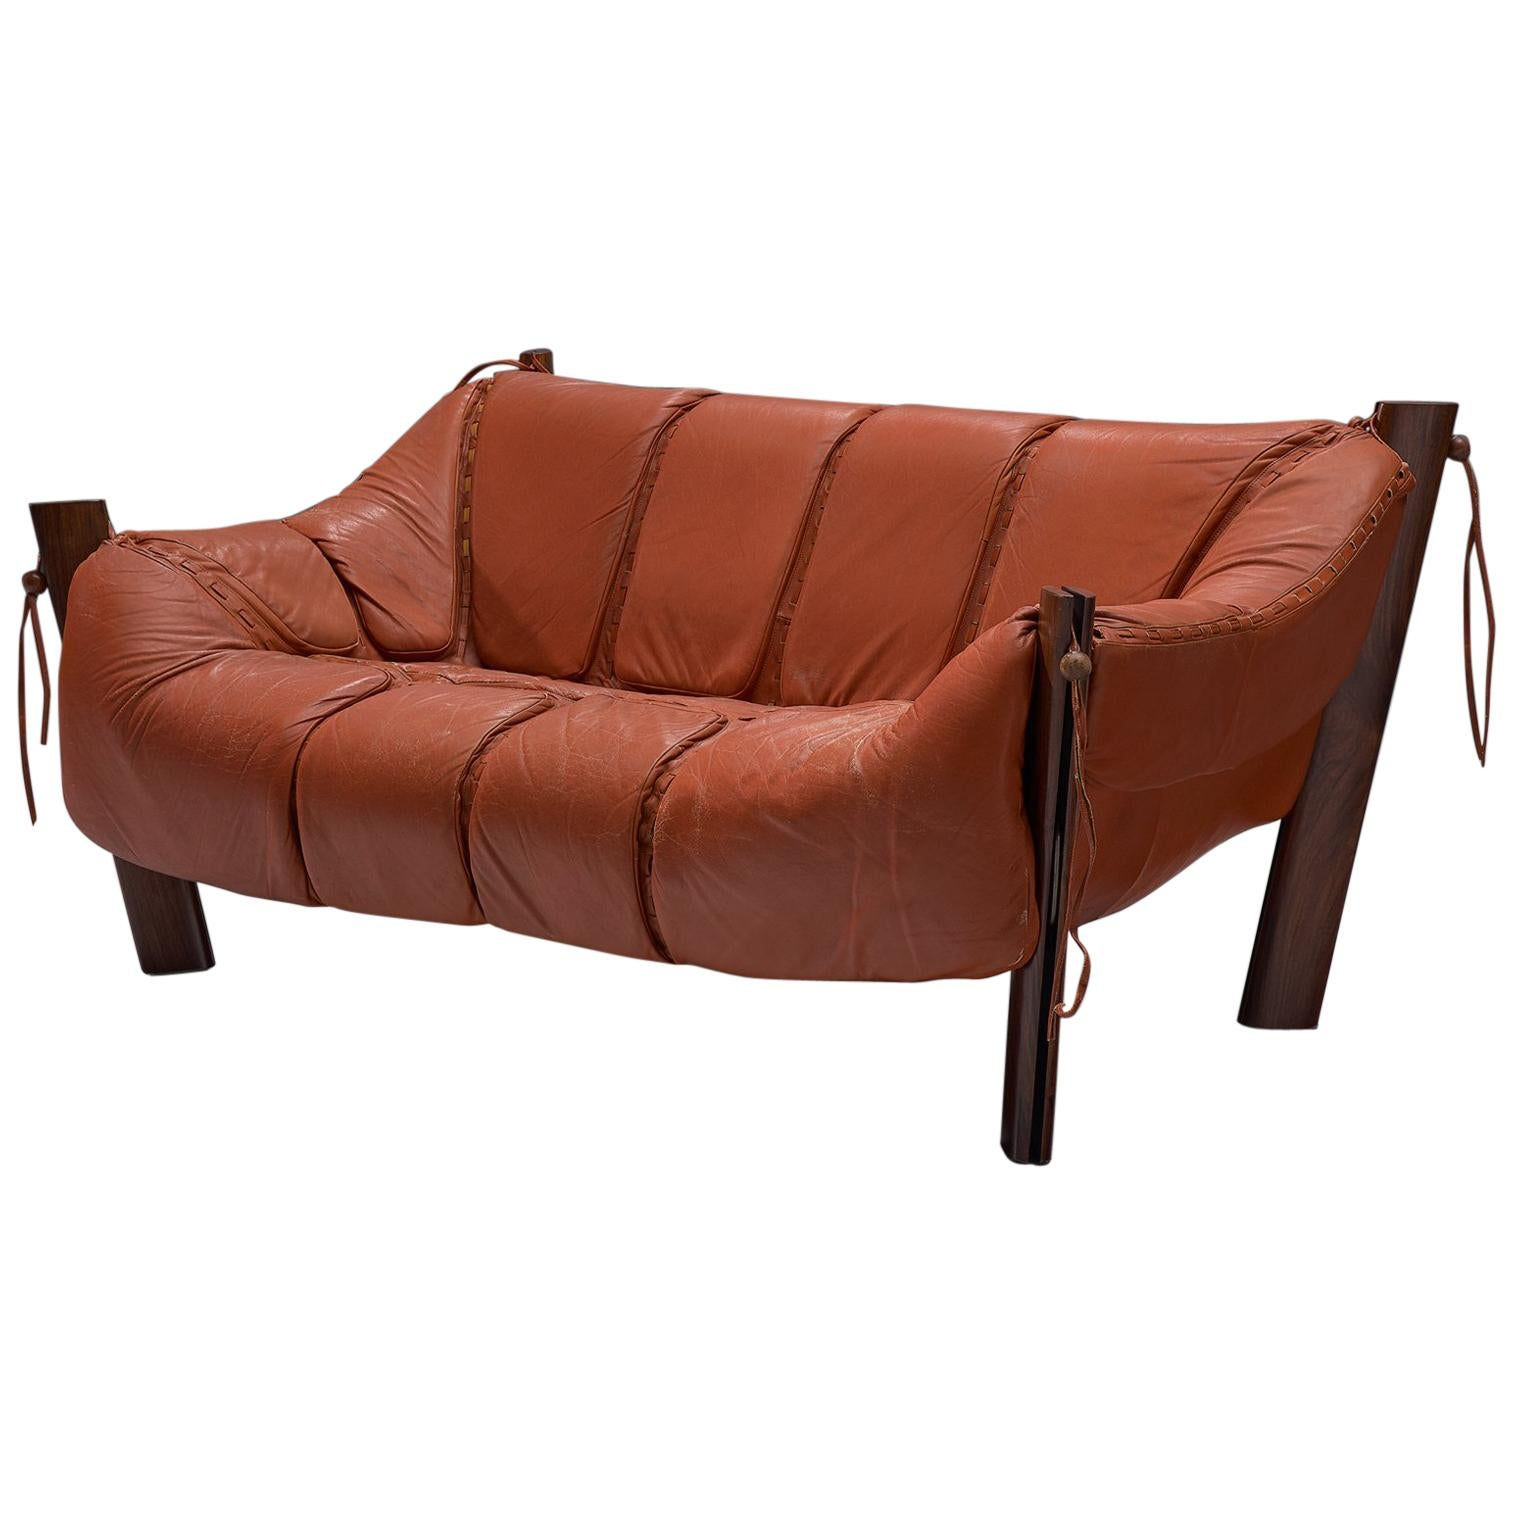 red leather two seater sofa new corner sofas uk percival lafer seat in rosewood and for sale at